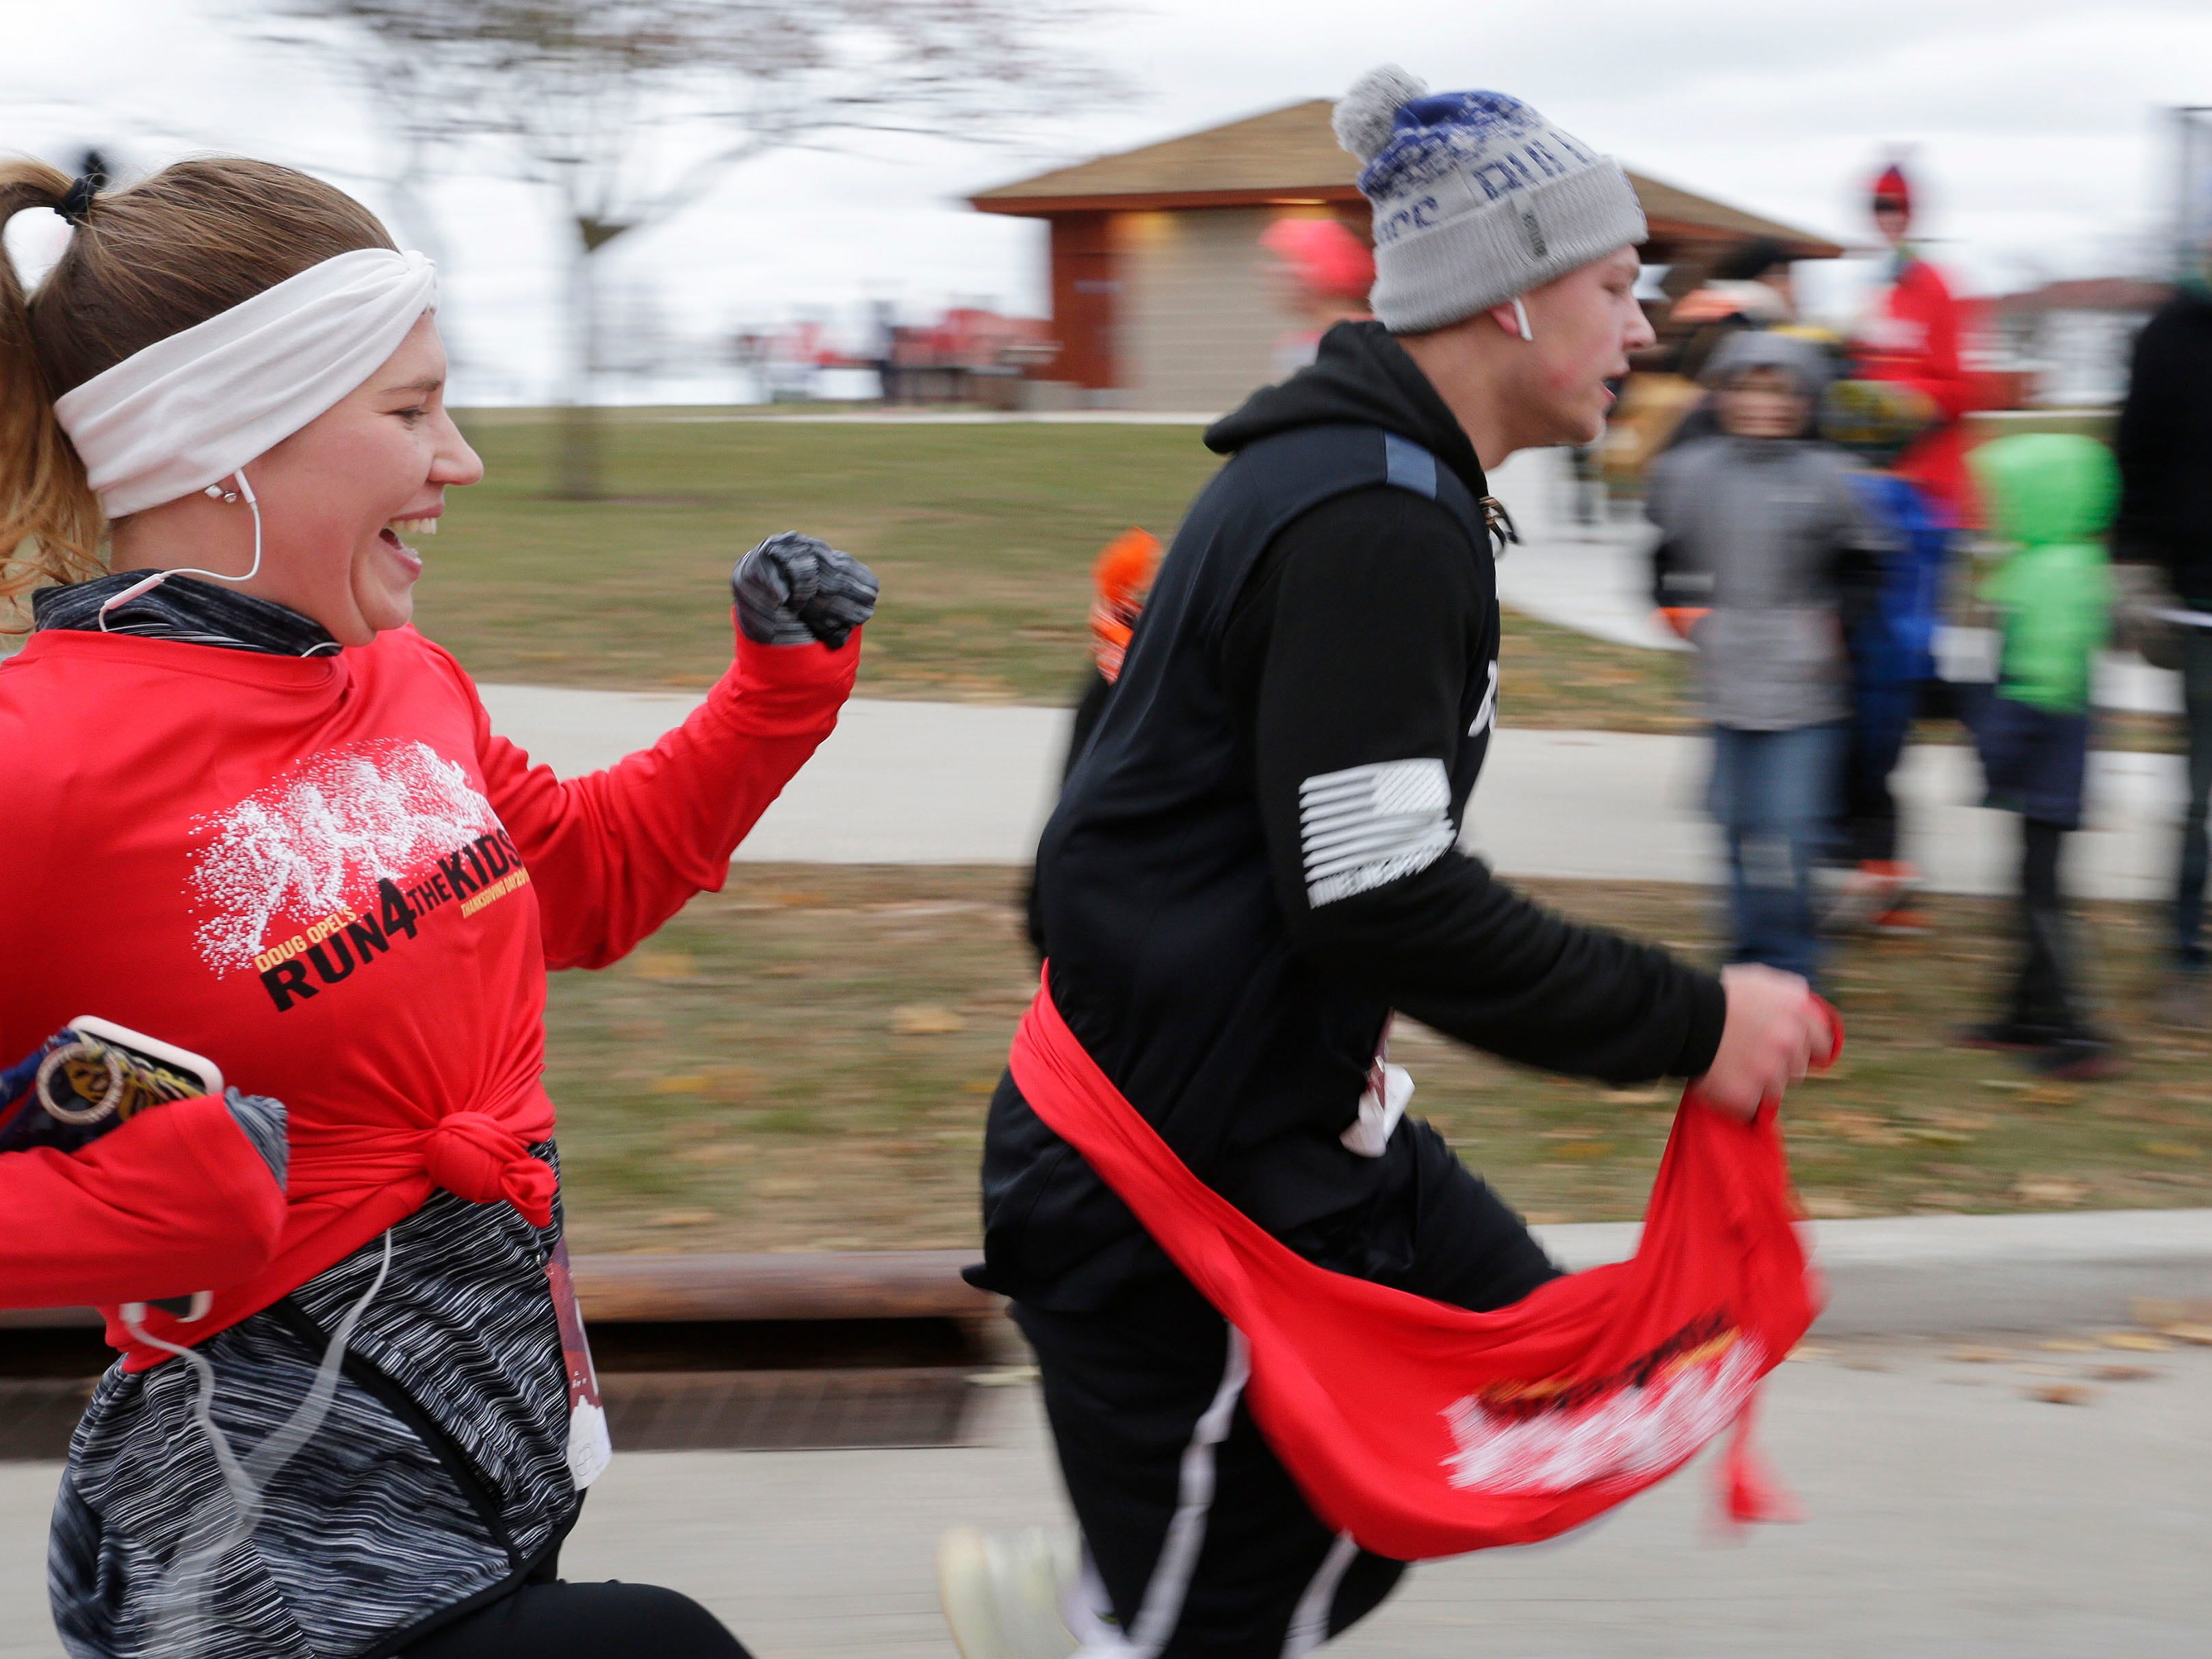 Smiles and sprints were common at the end of the Doug Opel Run for the Kids, Thursday, November 22, 2018, in Sheboygan, Wis.